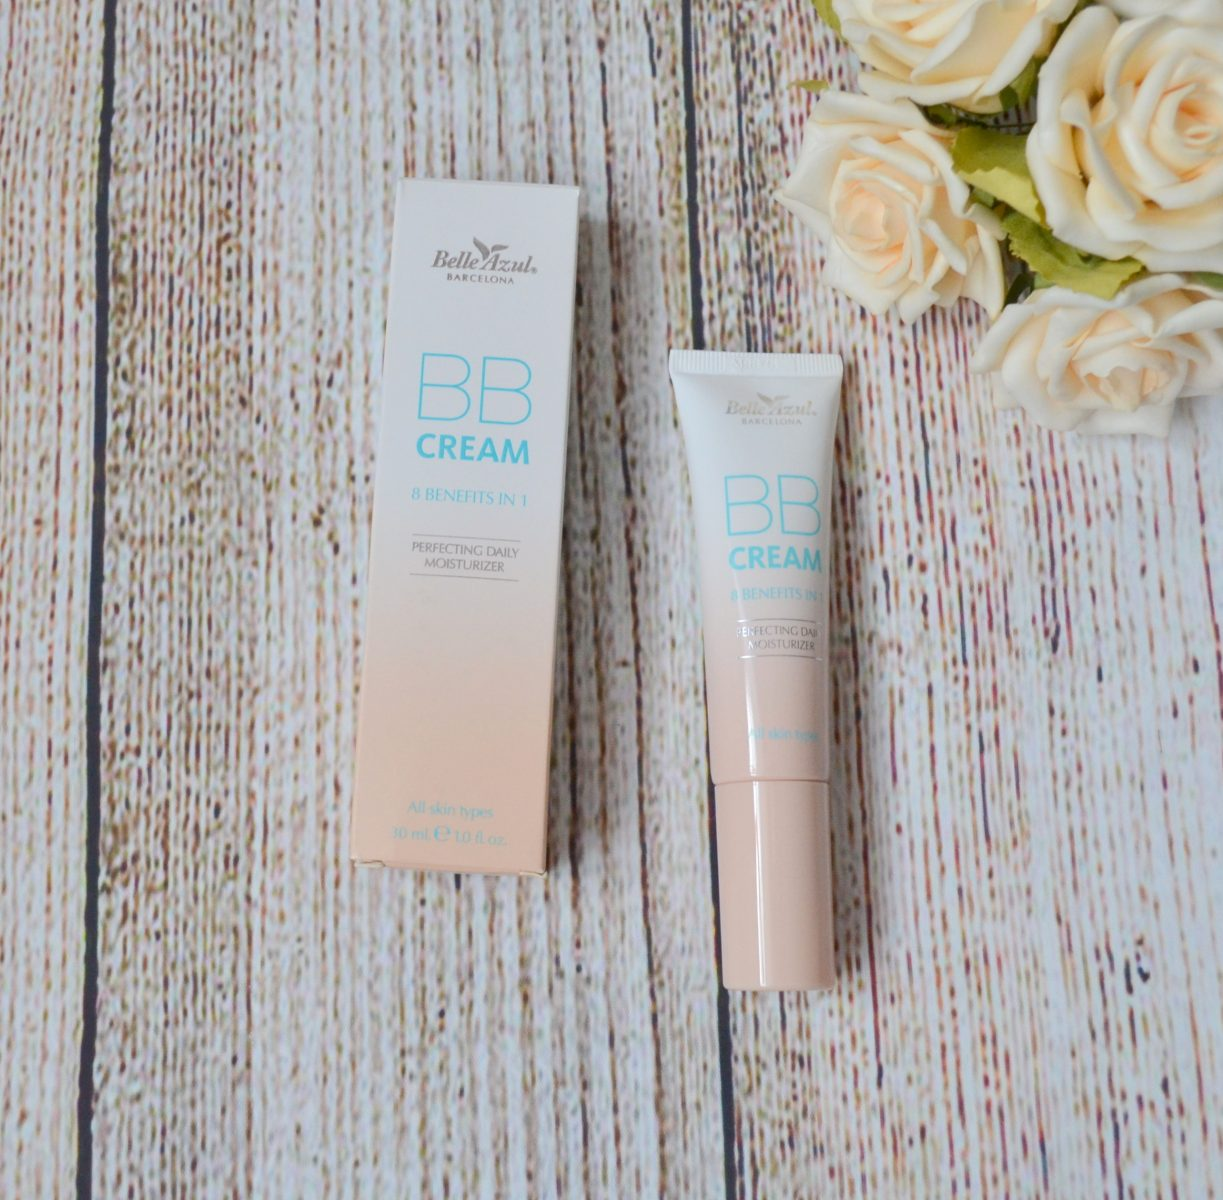 Belle Azul BB Cream 8-in-1 Beautifying Balm Moisturizer in Light